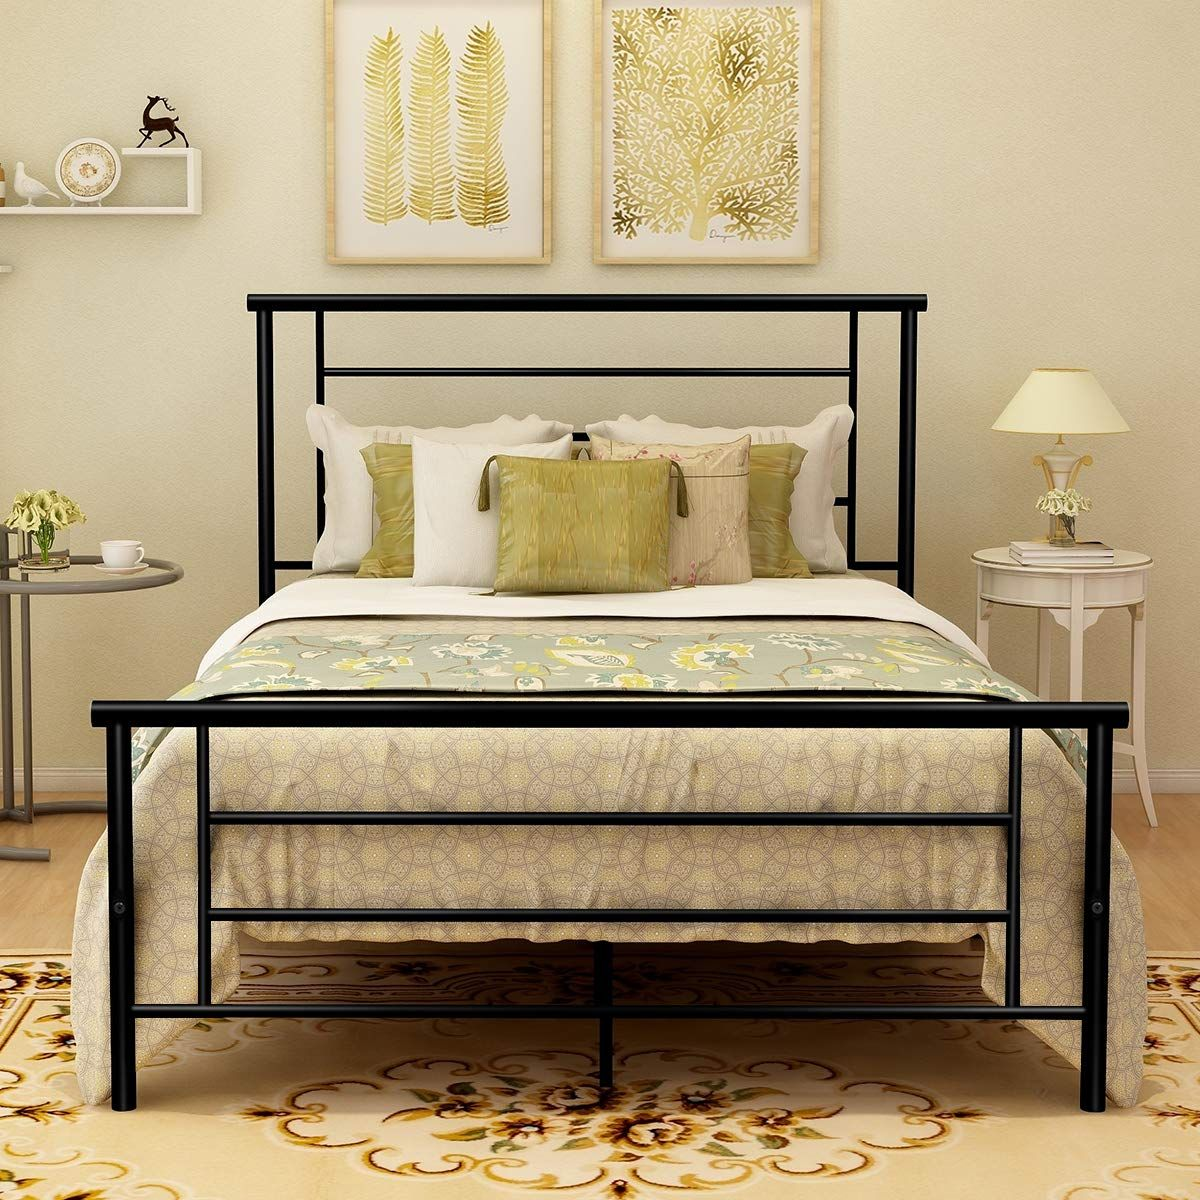 Metal Bed Frame Platform with Headboard and